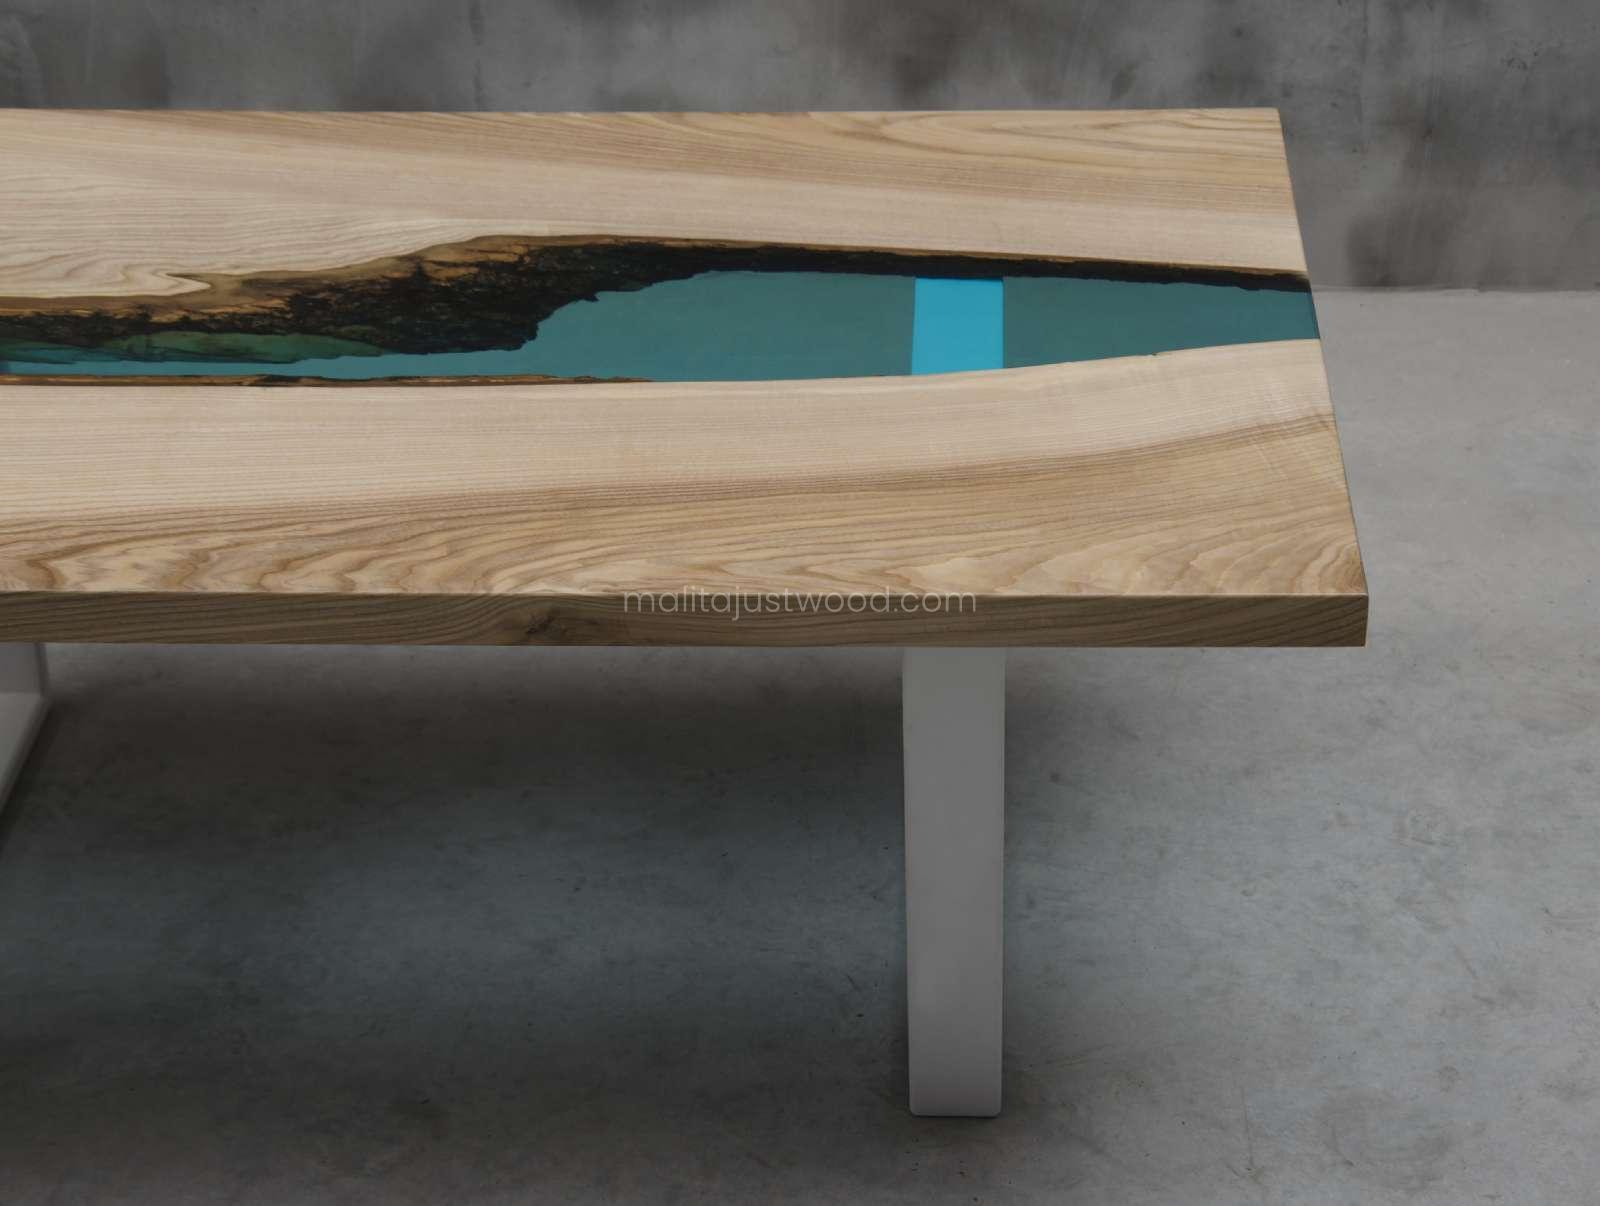 epoxy river coffee table cinis with blue resin